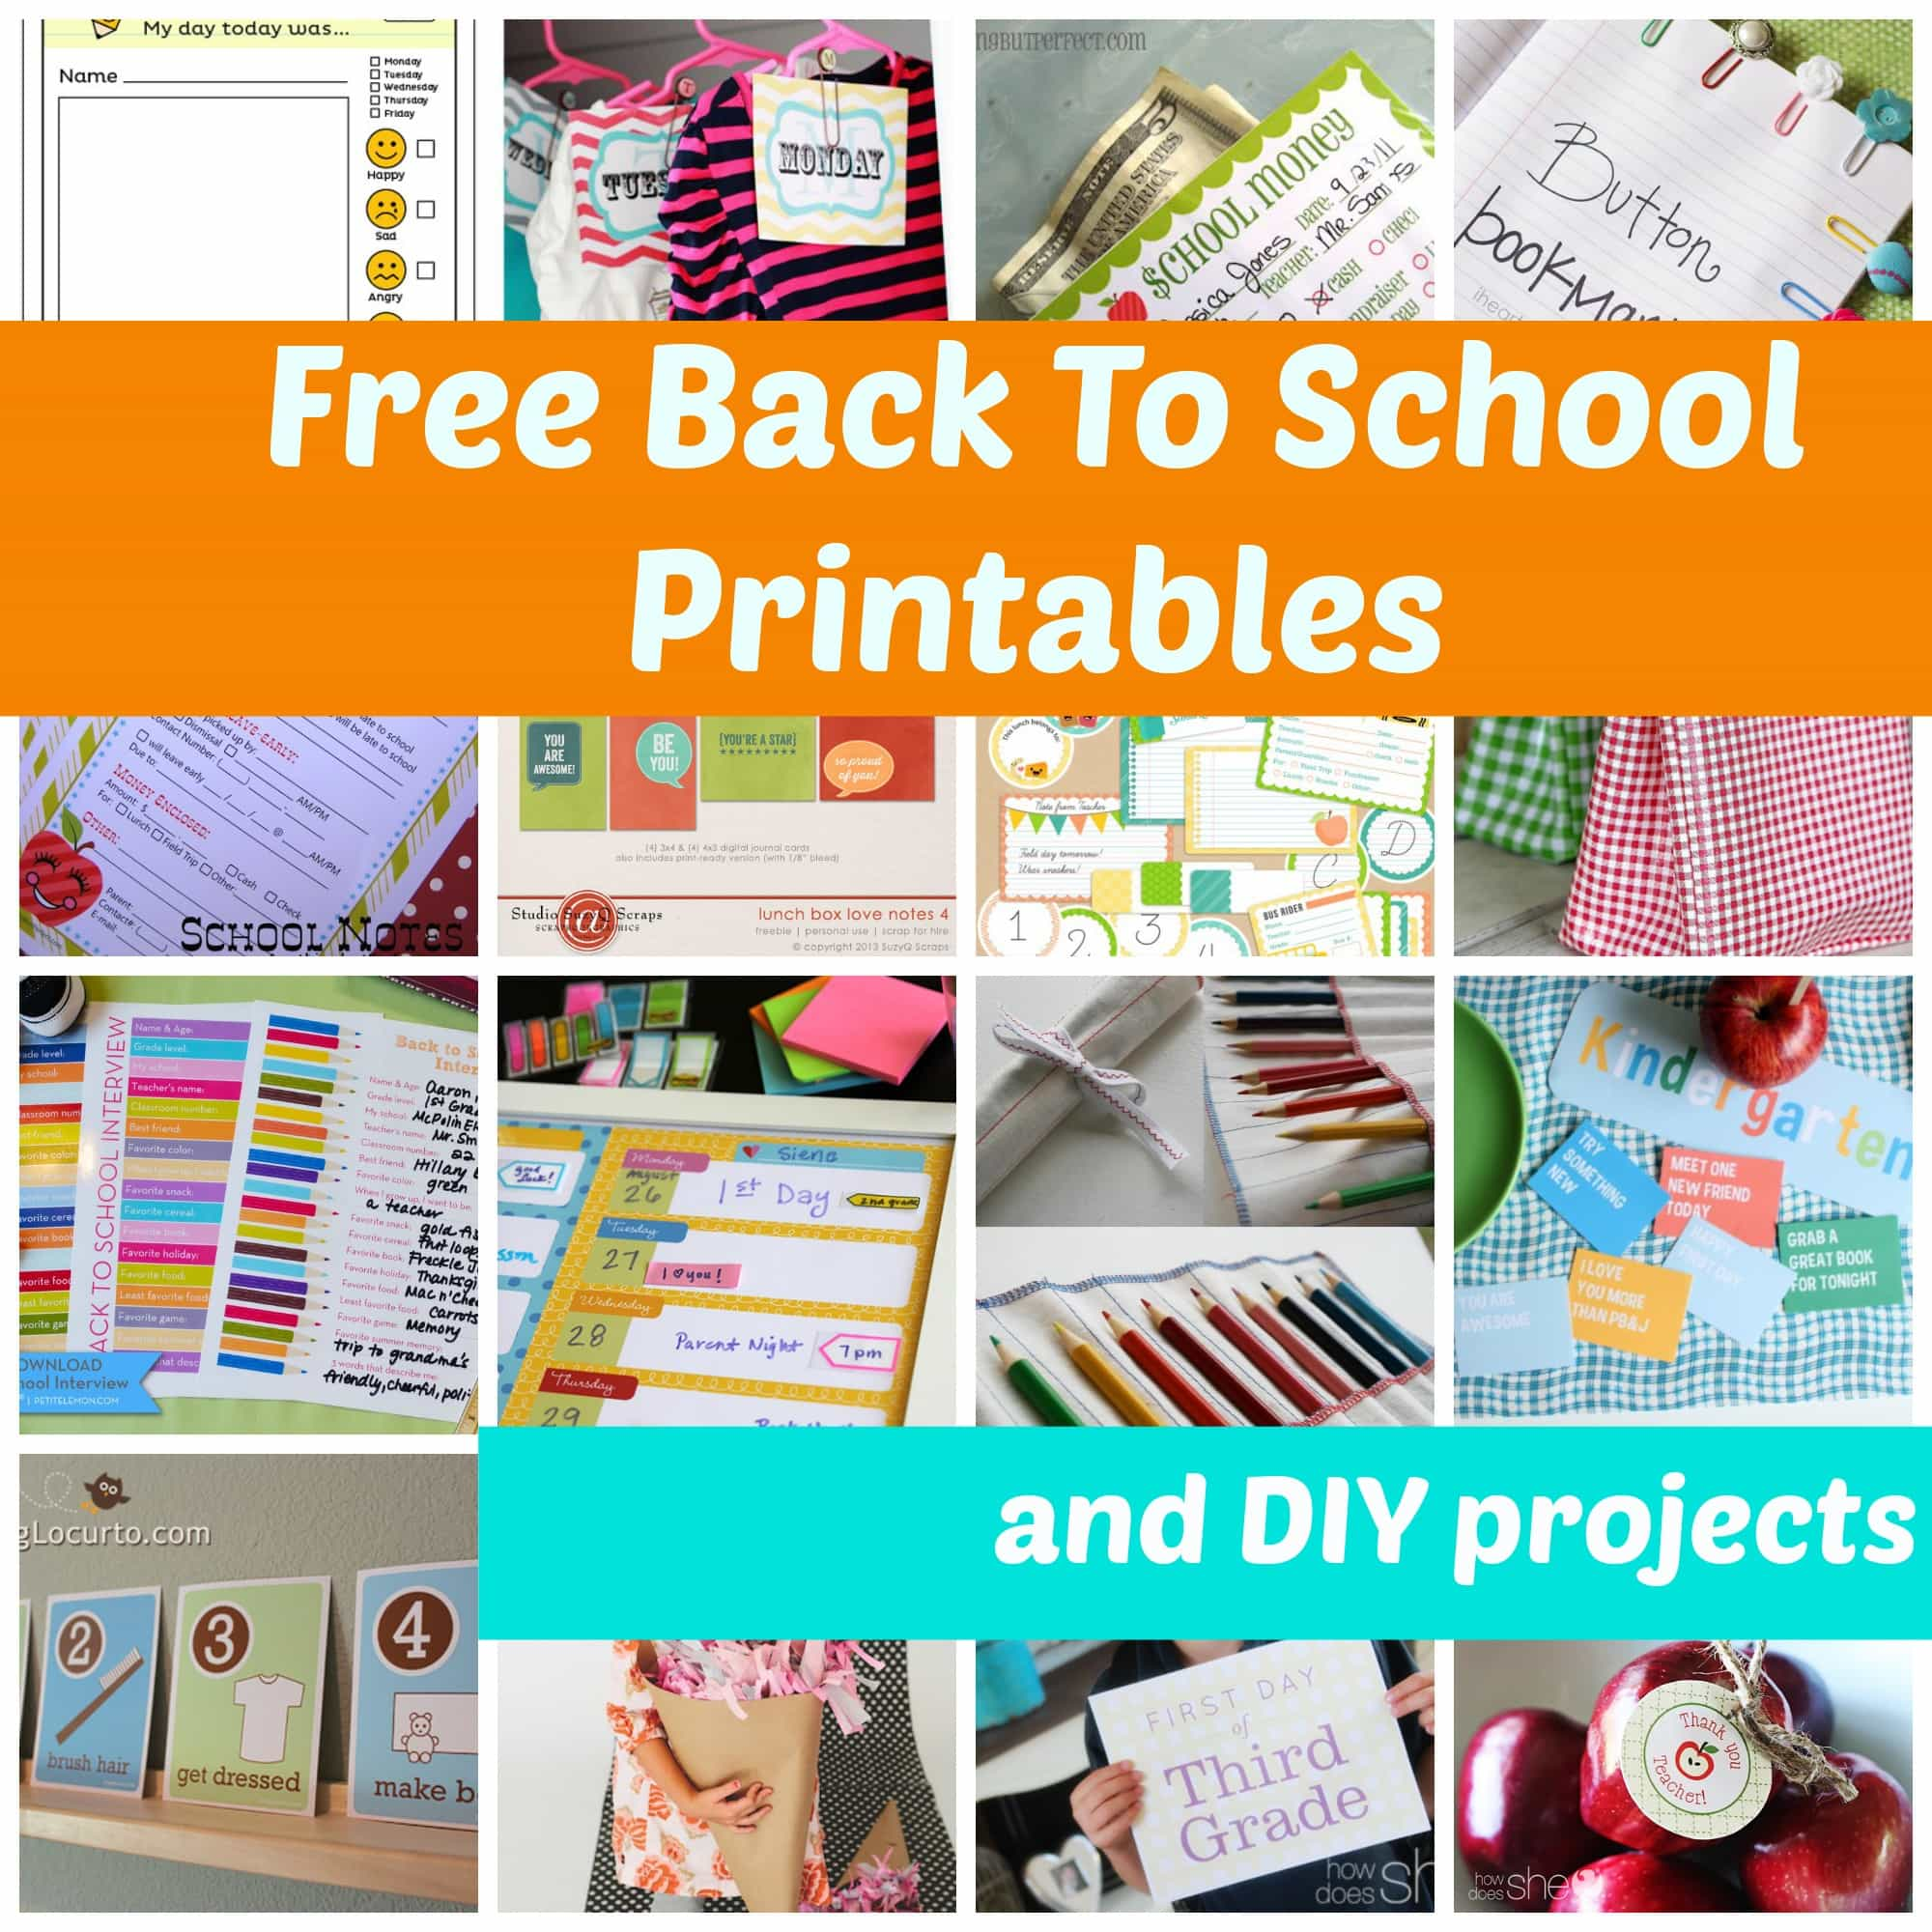 Free Back To School Ideas To Make Their First Day Special